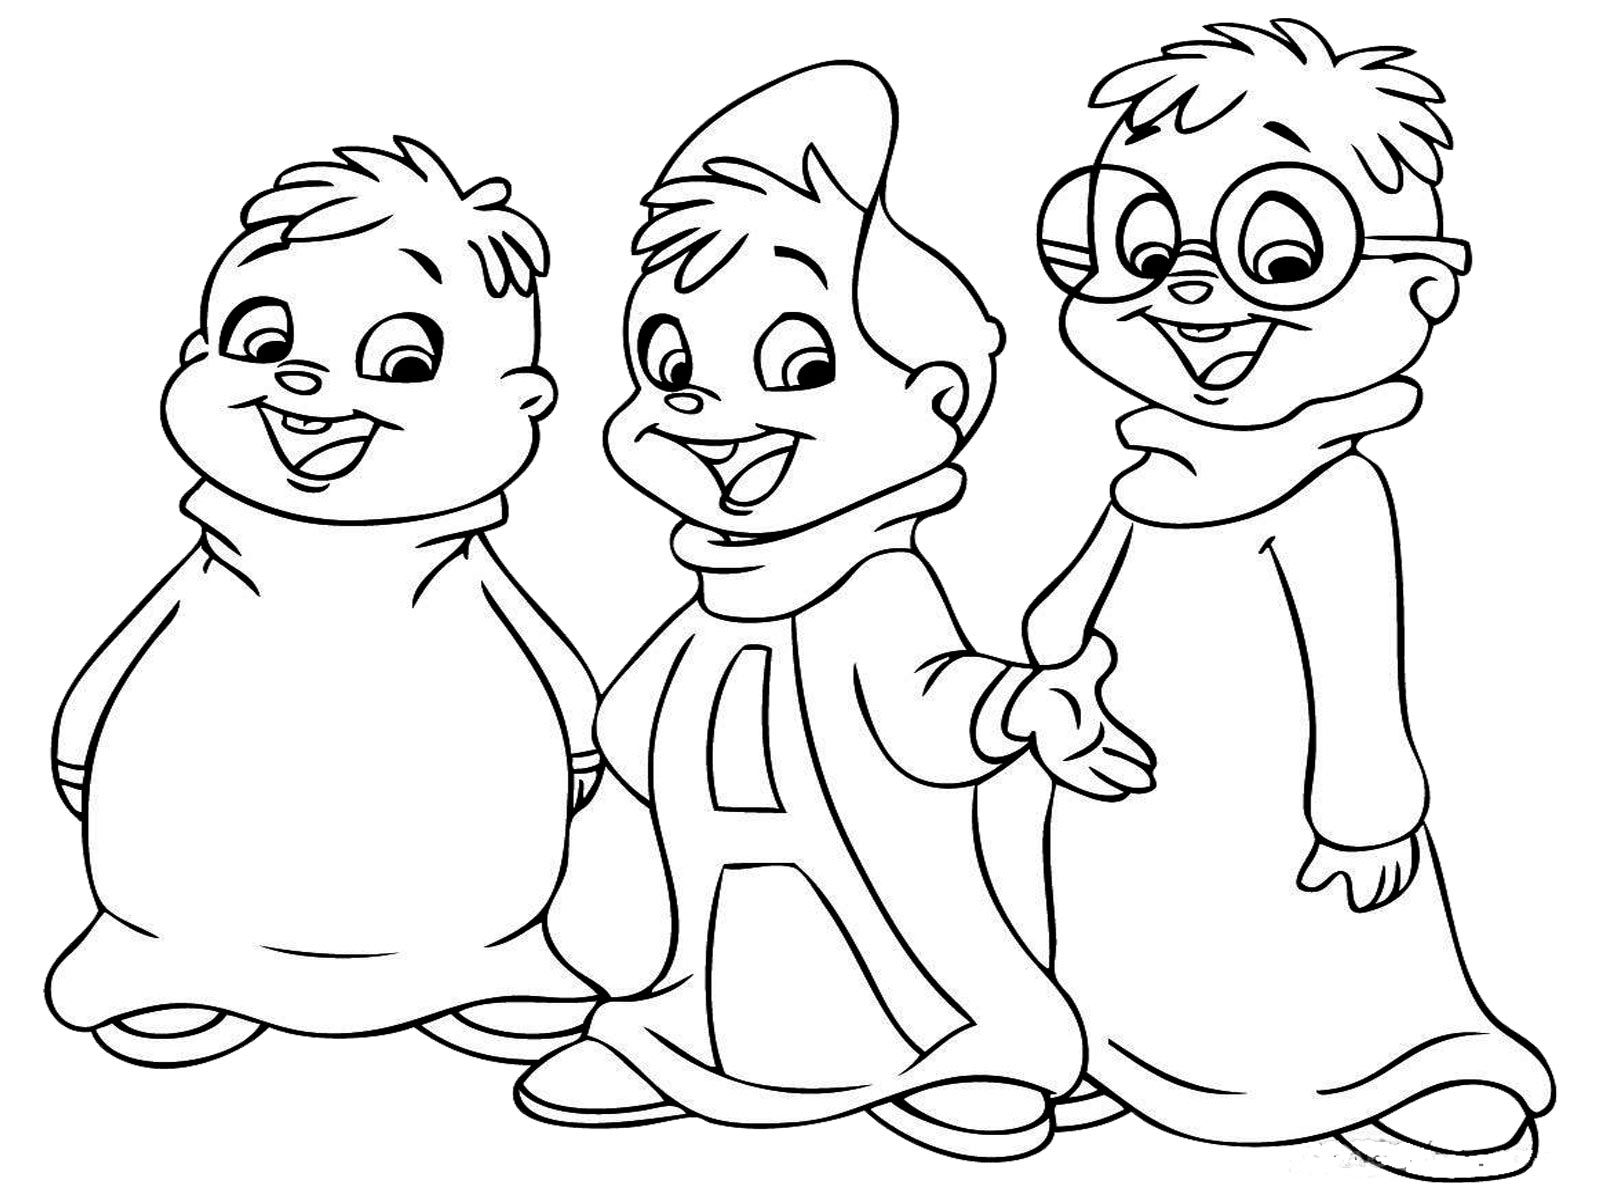 printable coloring pages for boys alvin and the chipmunks coloring pages realistic coloring pages none pinterest chipmunks boys and kids